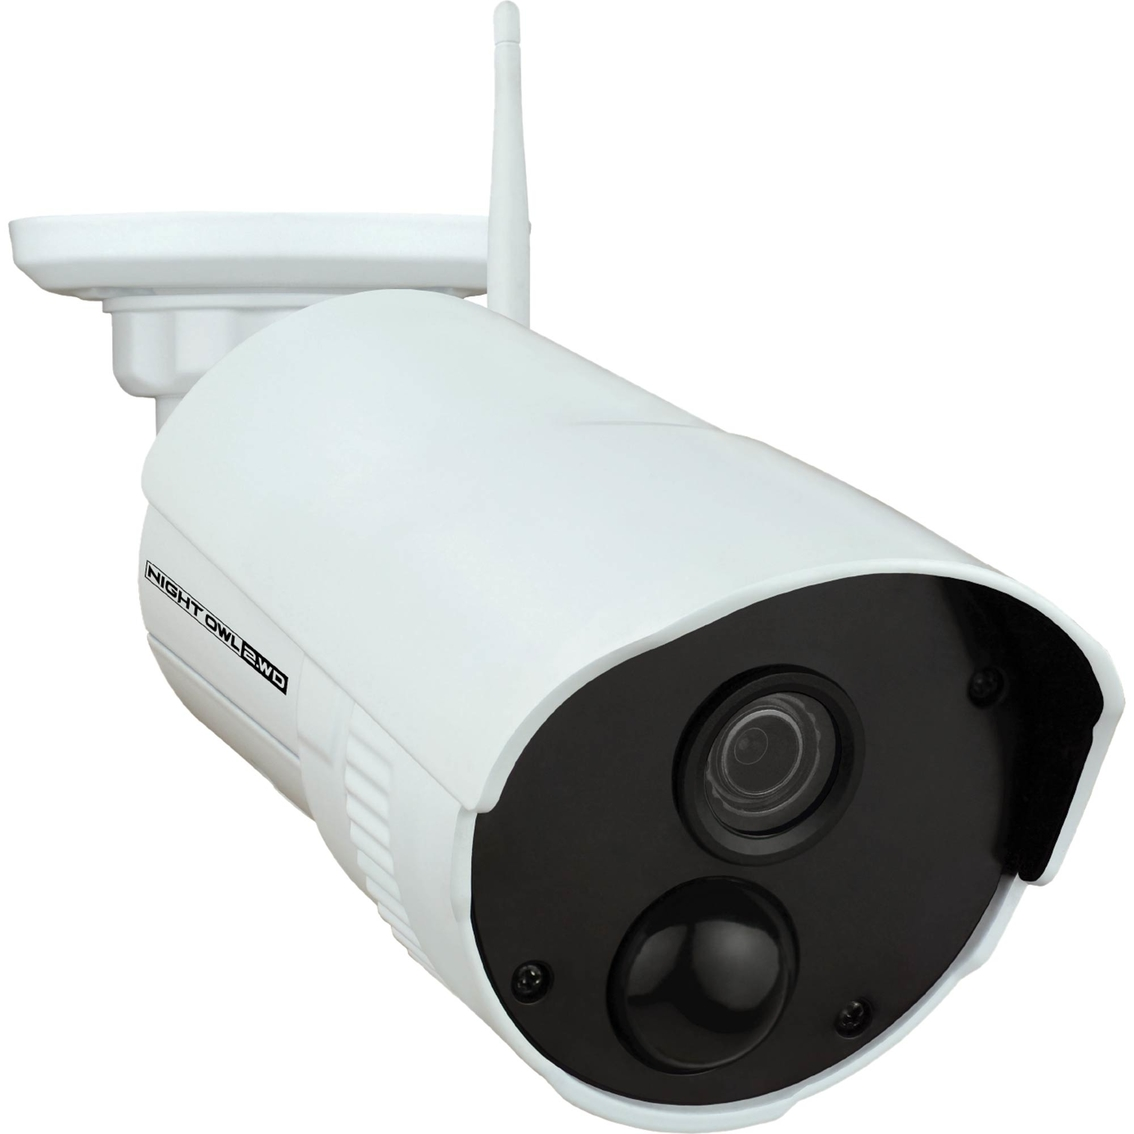 Night Owl Add-on Indoor/outdoor Wireless 1080p Ac Powered